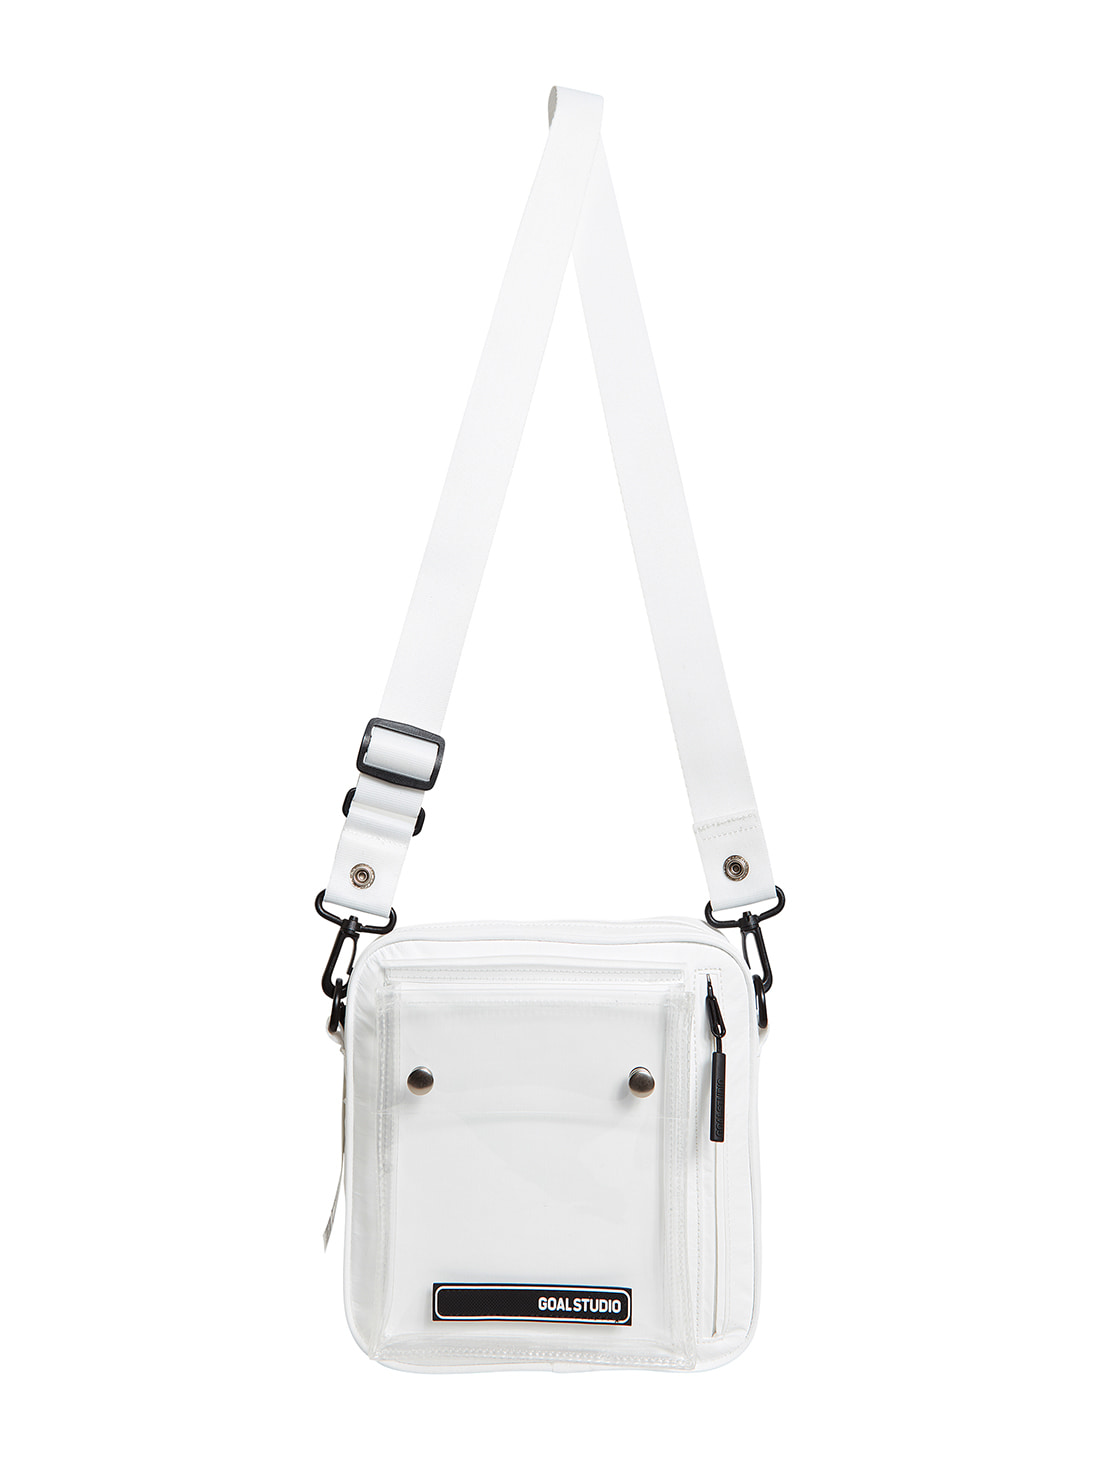 GOALSTUDIO LOGO WAPPEN SMALL BAG - WHITE